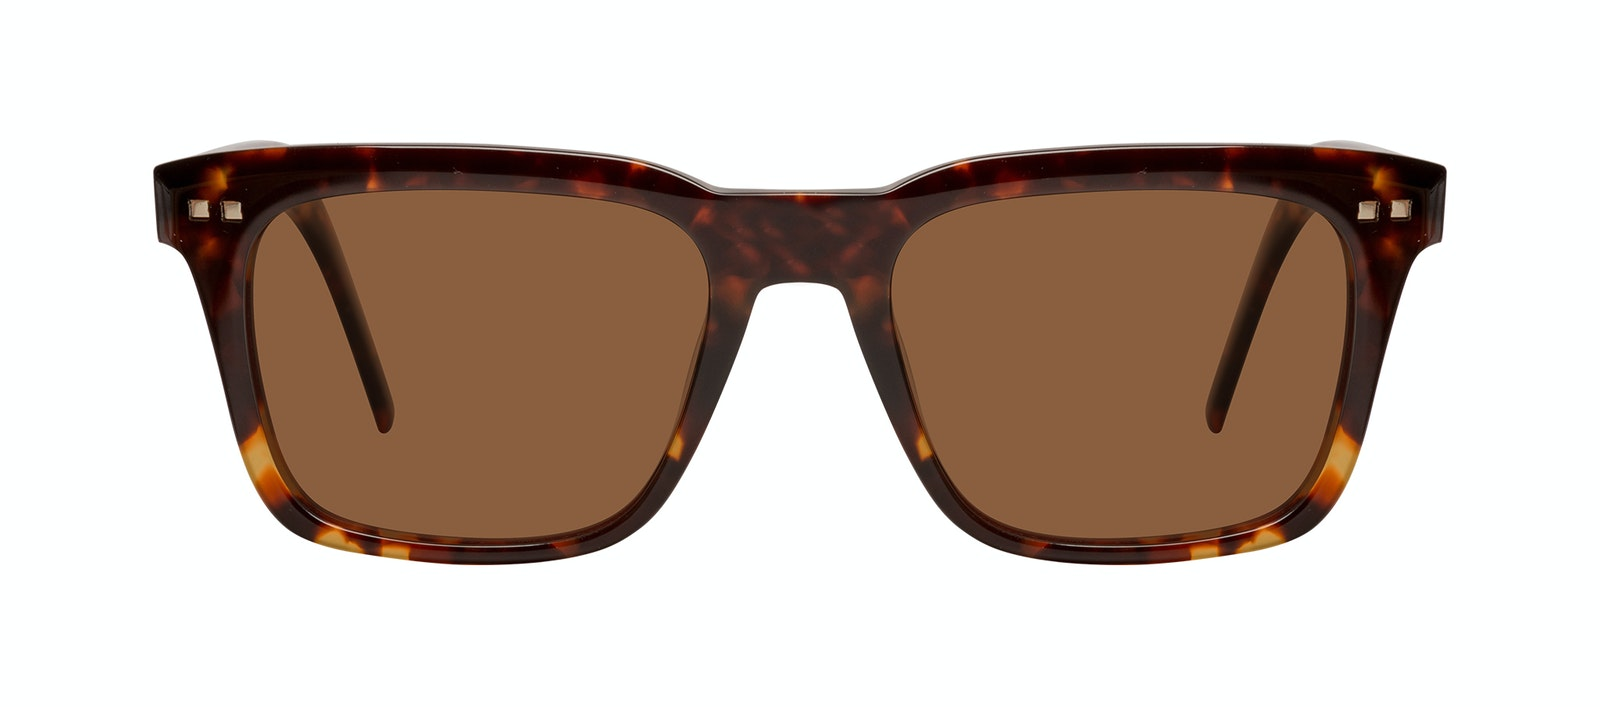 Affordable Fashion Glasses Square Sunglasses Men Well Tortoise Front